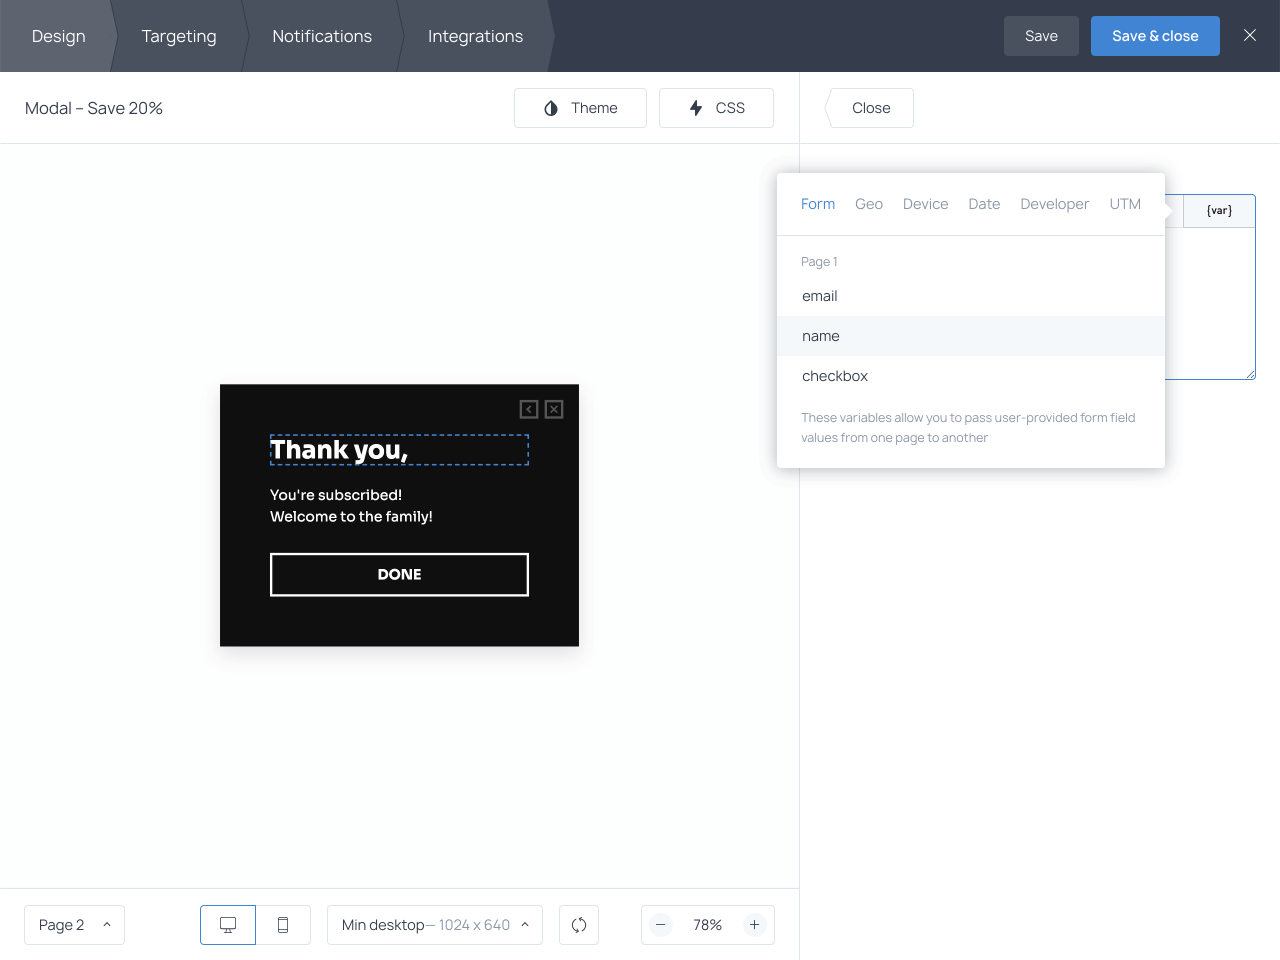 To display visitor's names on popups, you'll need to capture them first